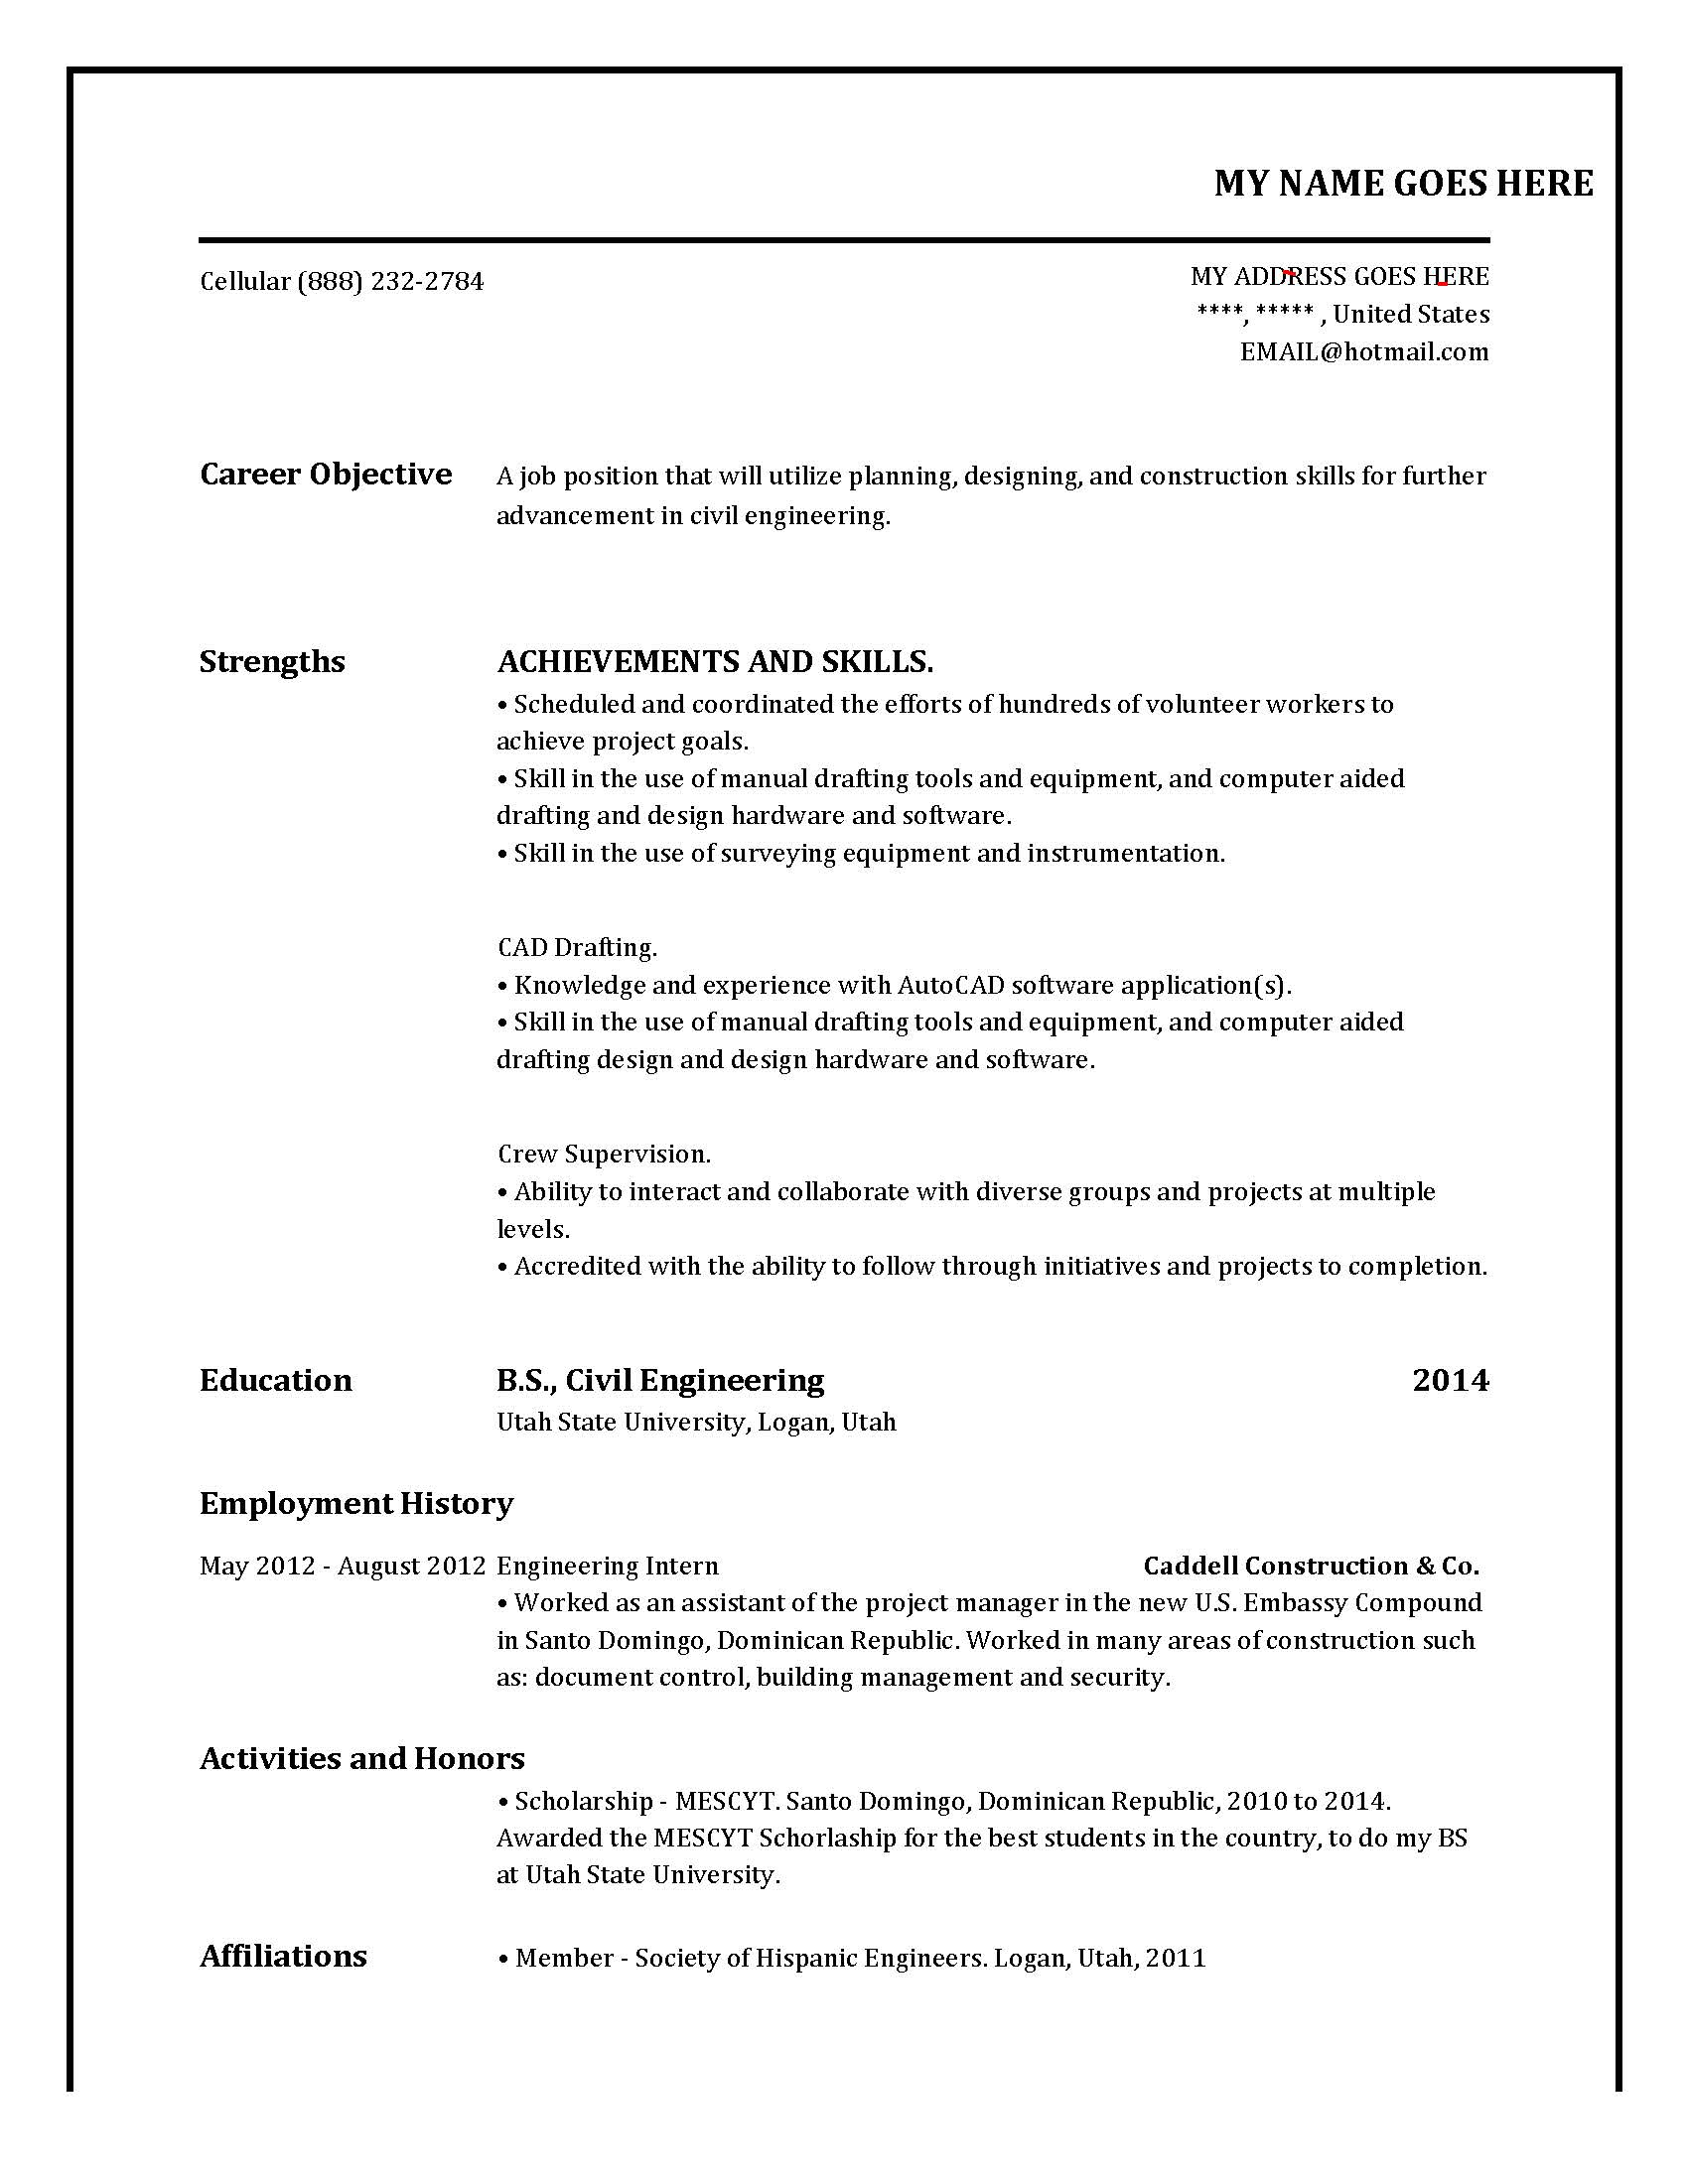 me resume resume writers near me resume cover letter template for resume writers near me 11602